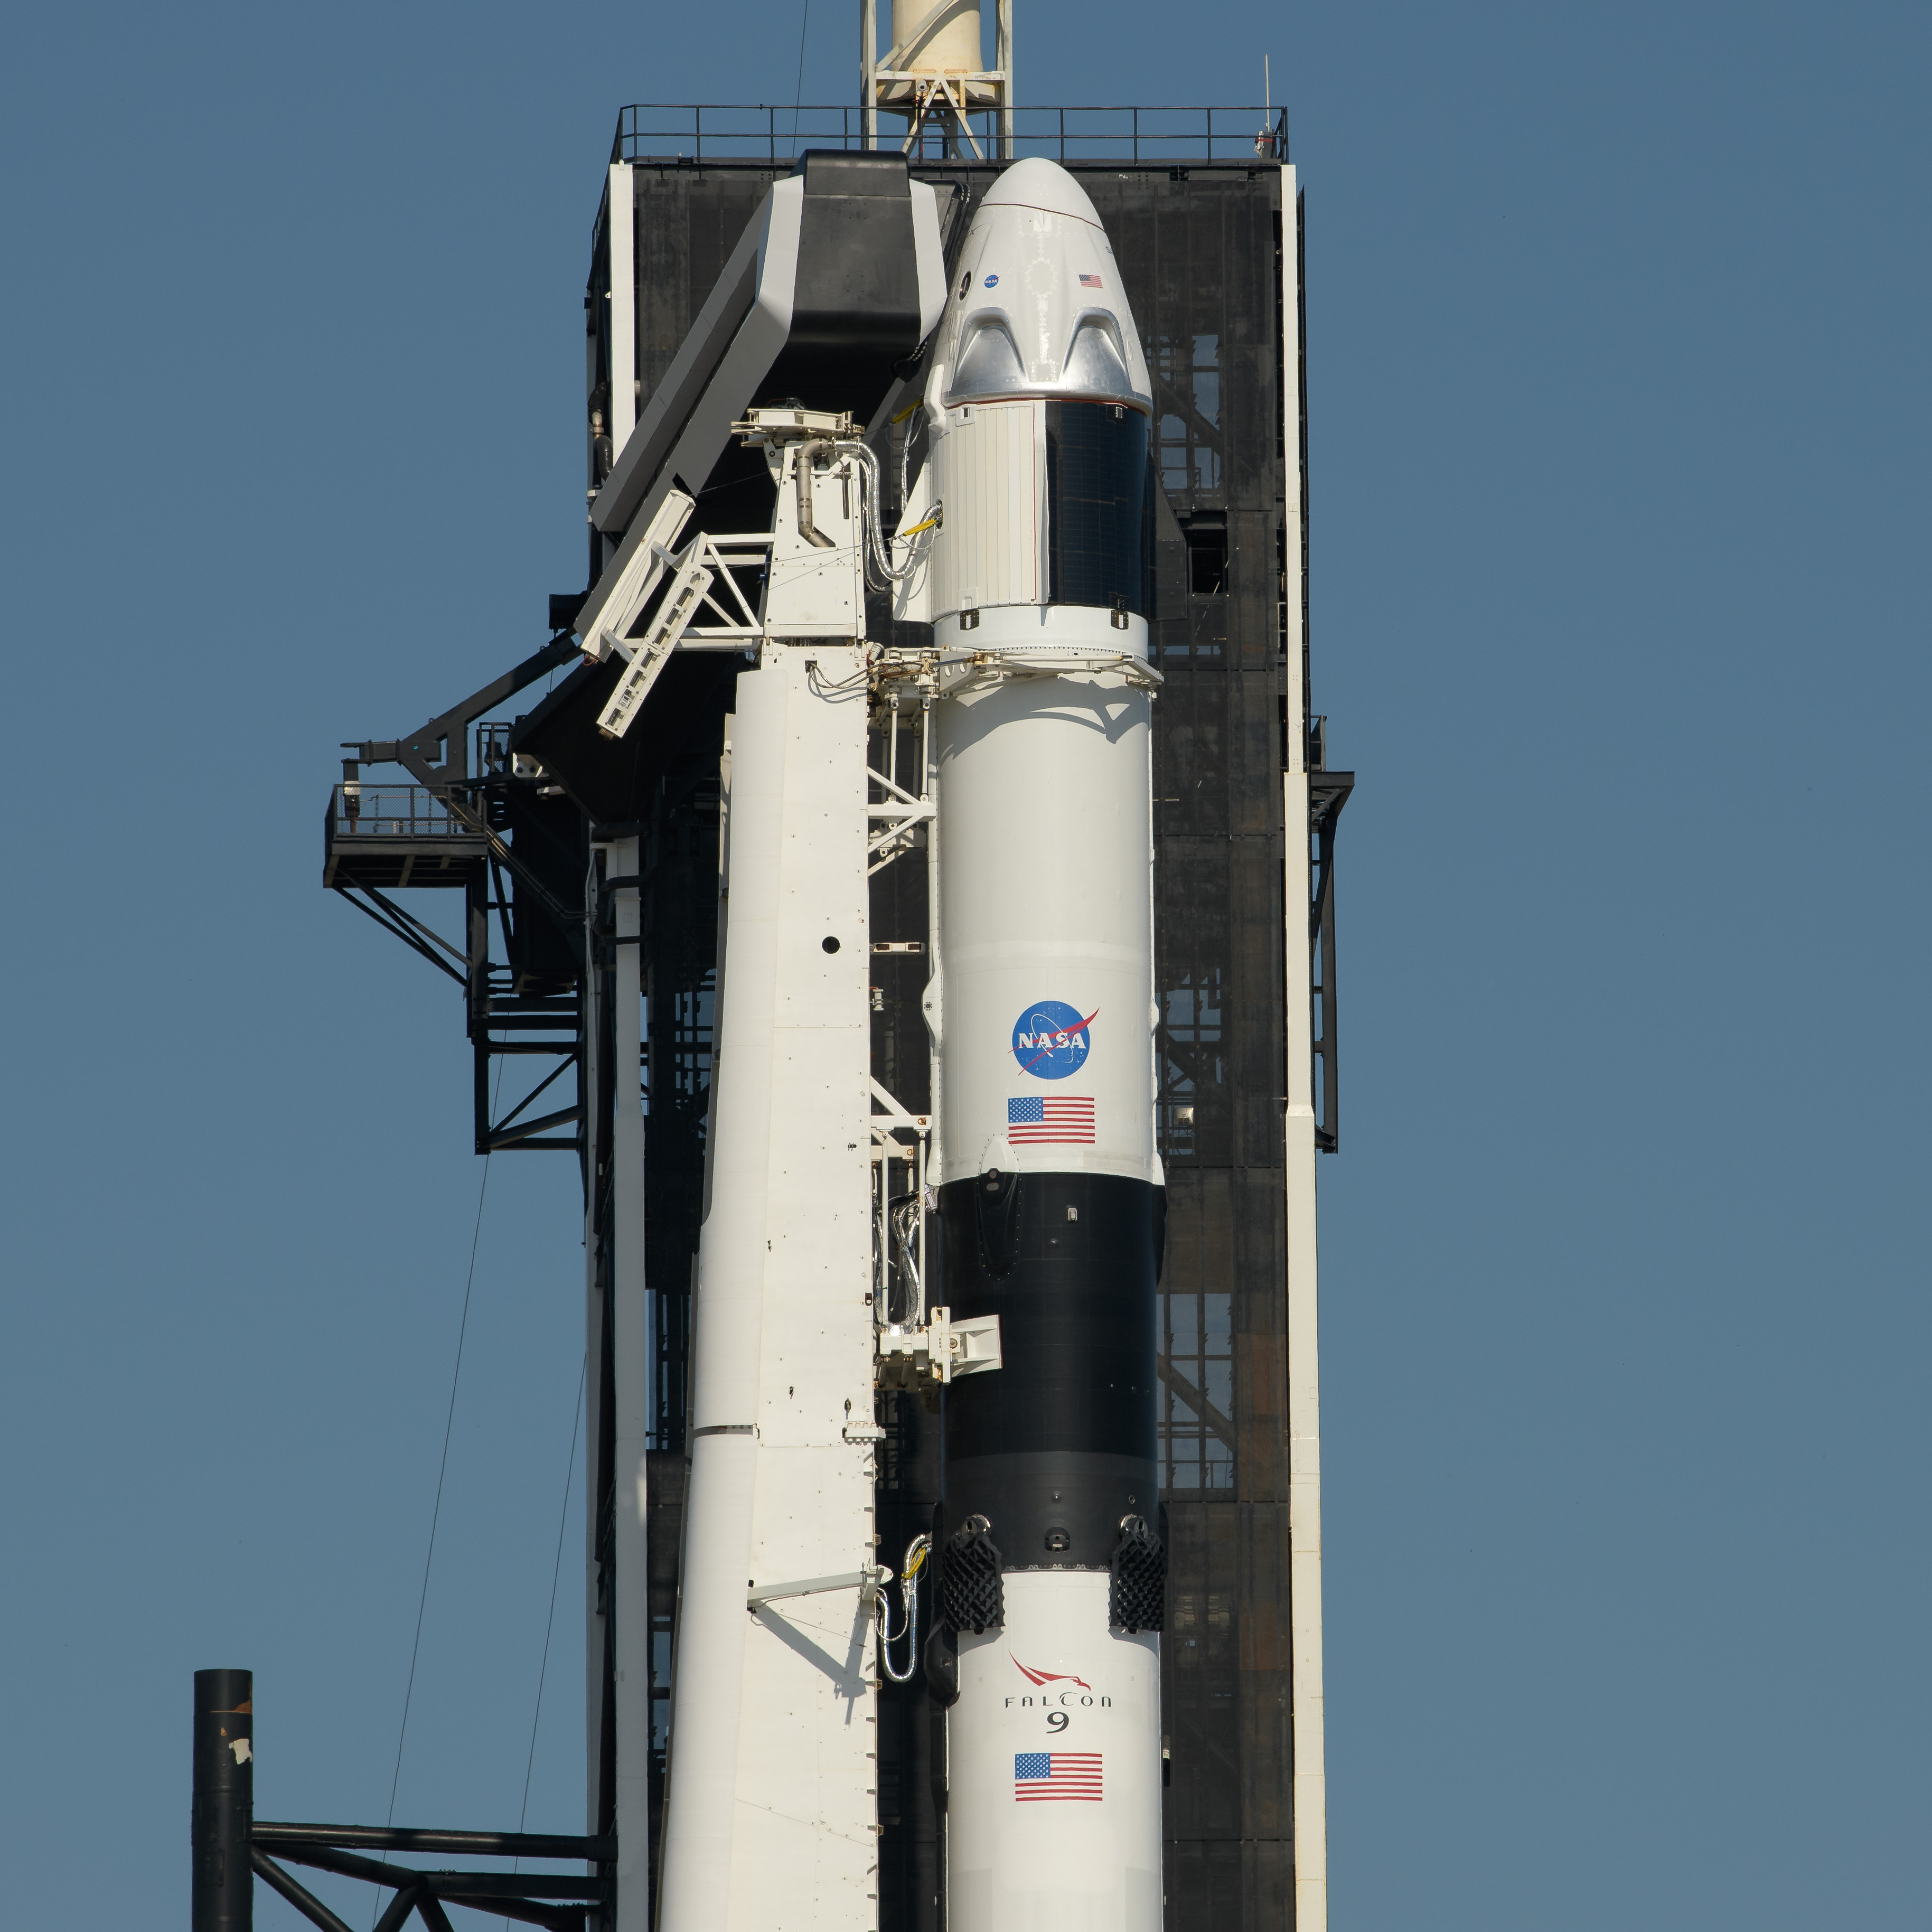 https://upload.wikimedia.org/wikipedia/commons/9/96/SpaceX_Demo-2_Rollout_%28NHQ202005210011%29.jpg